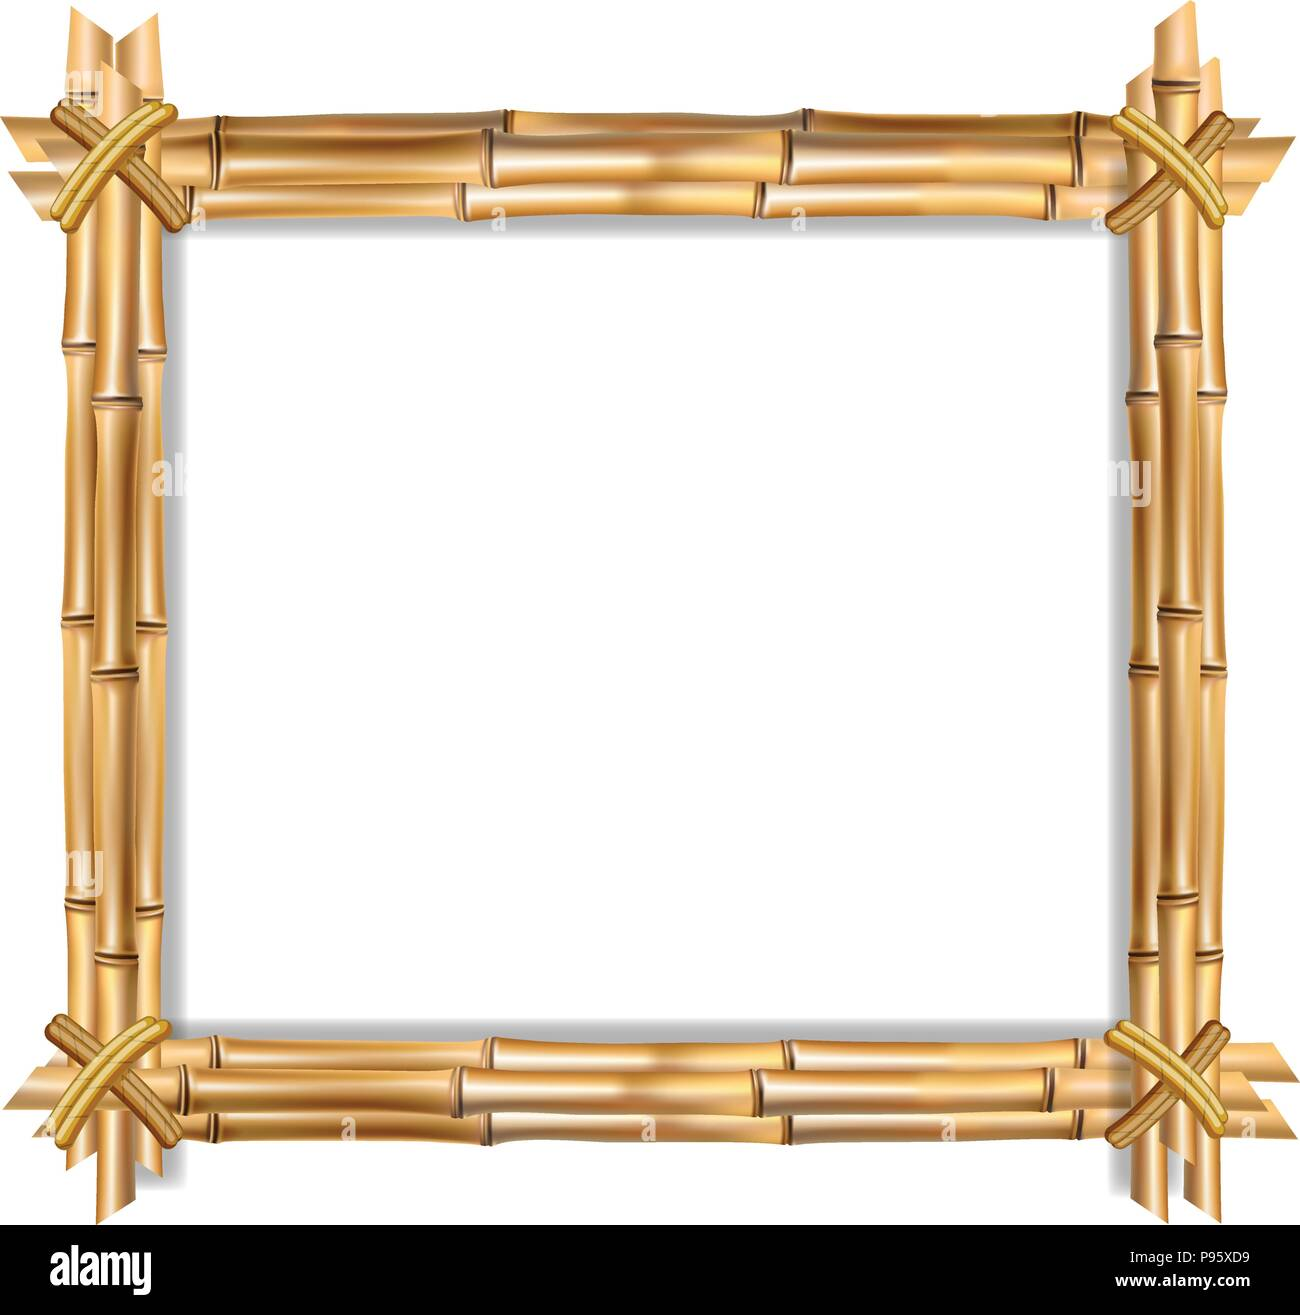 Square brown wooden border frame made of realistic brown bamboo ...